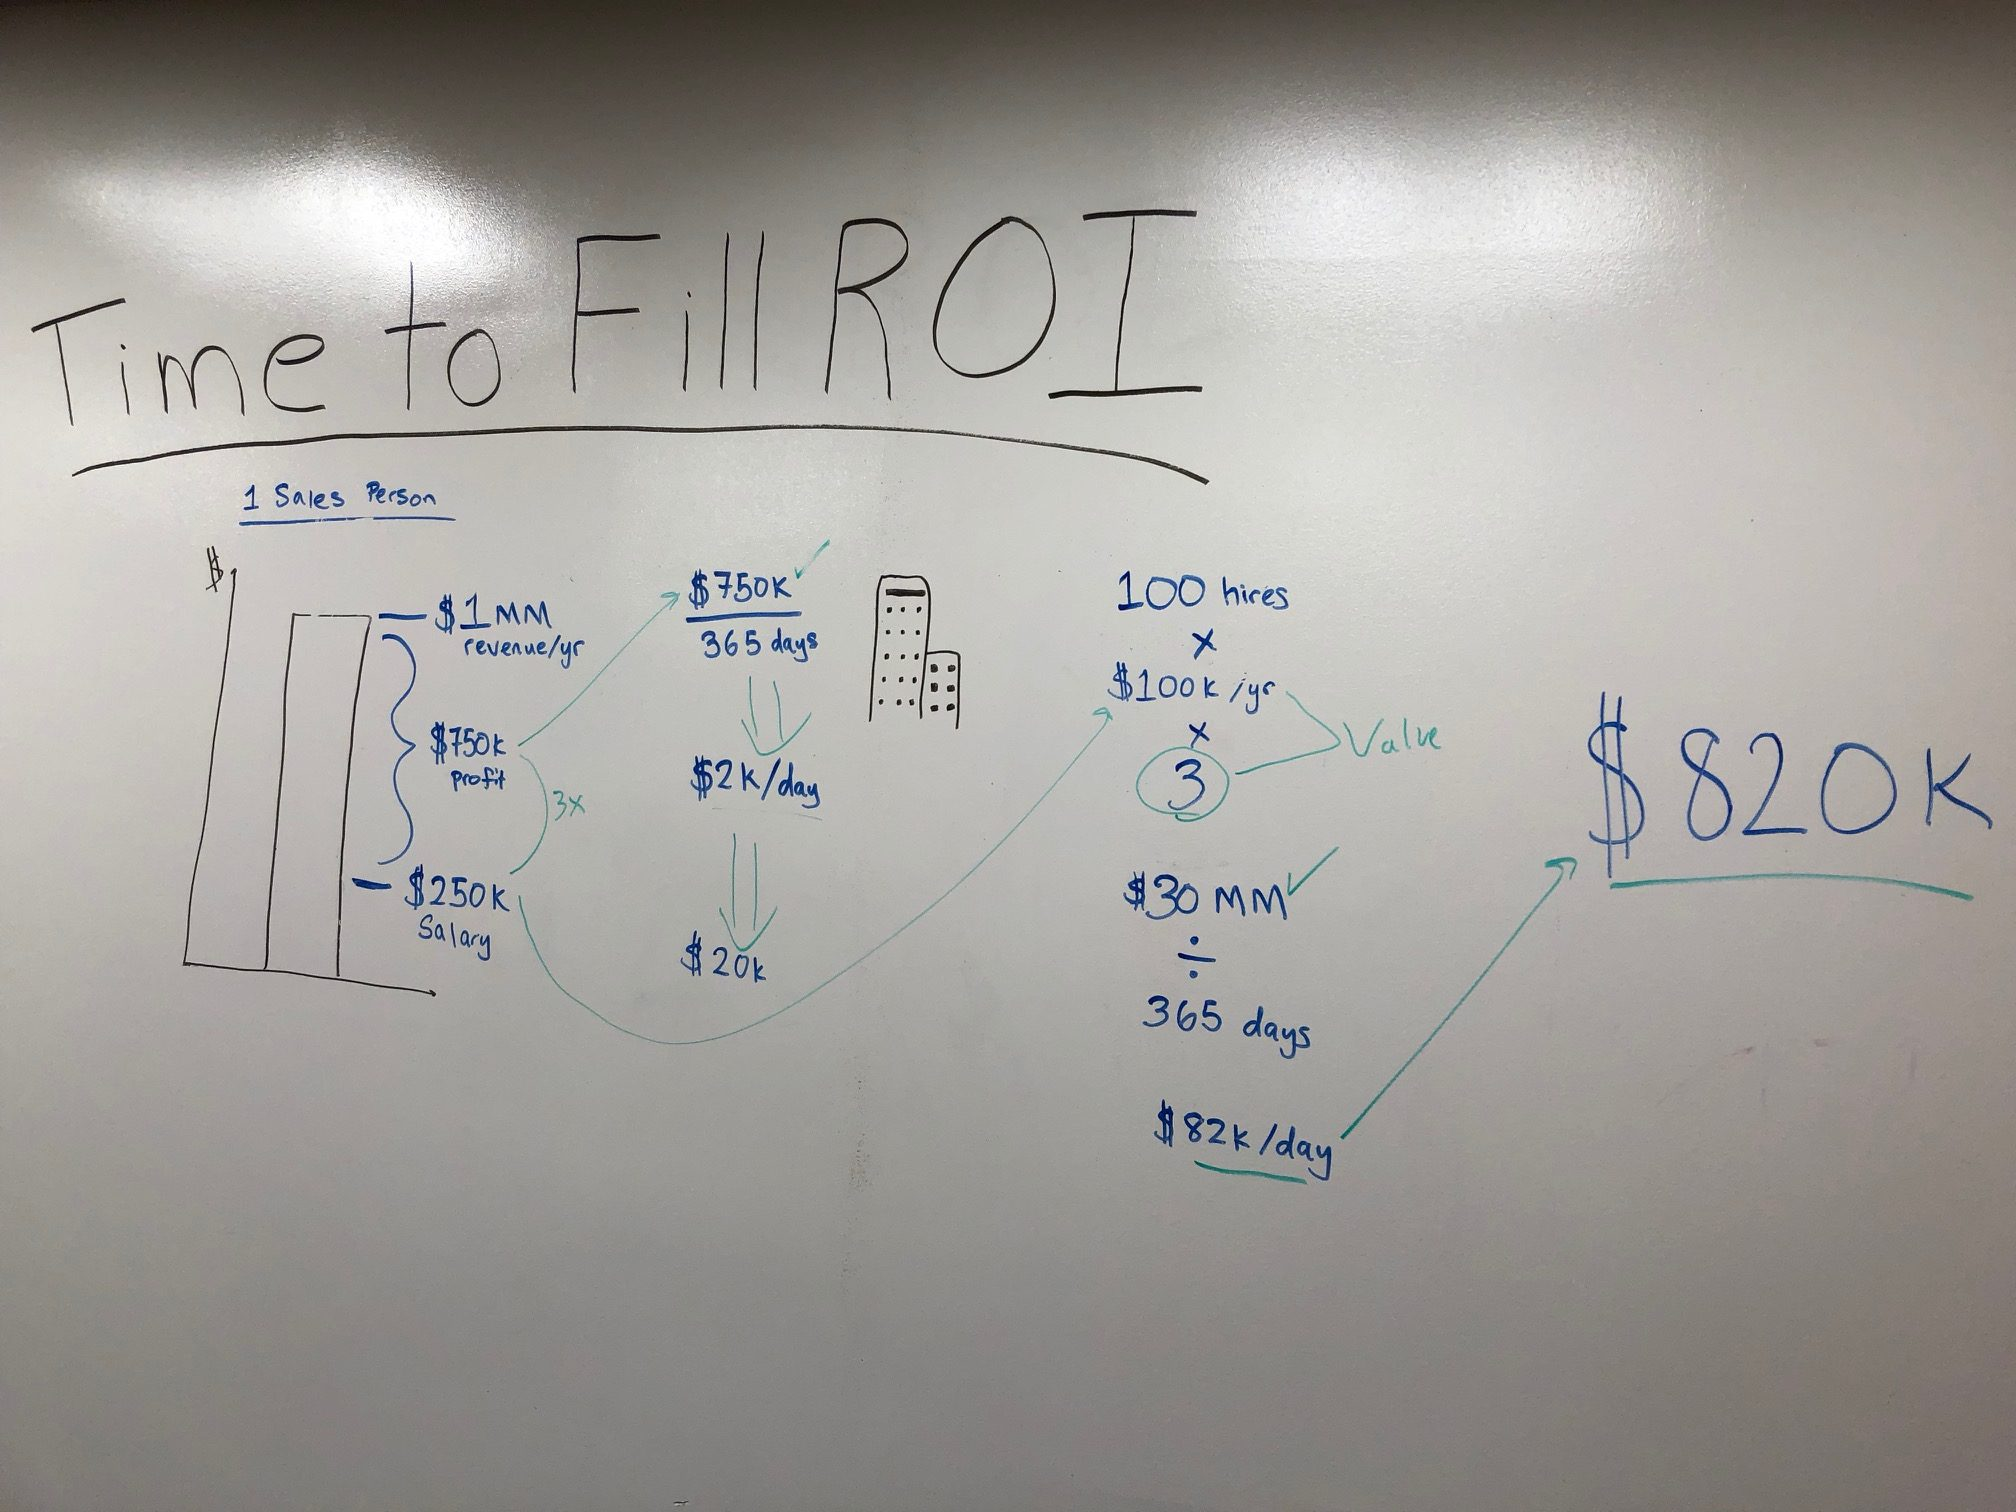 How to Calculate Time To Fill ROI